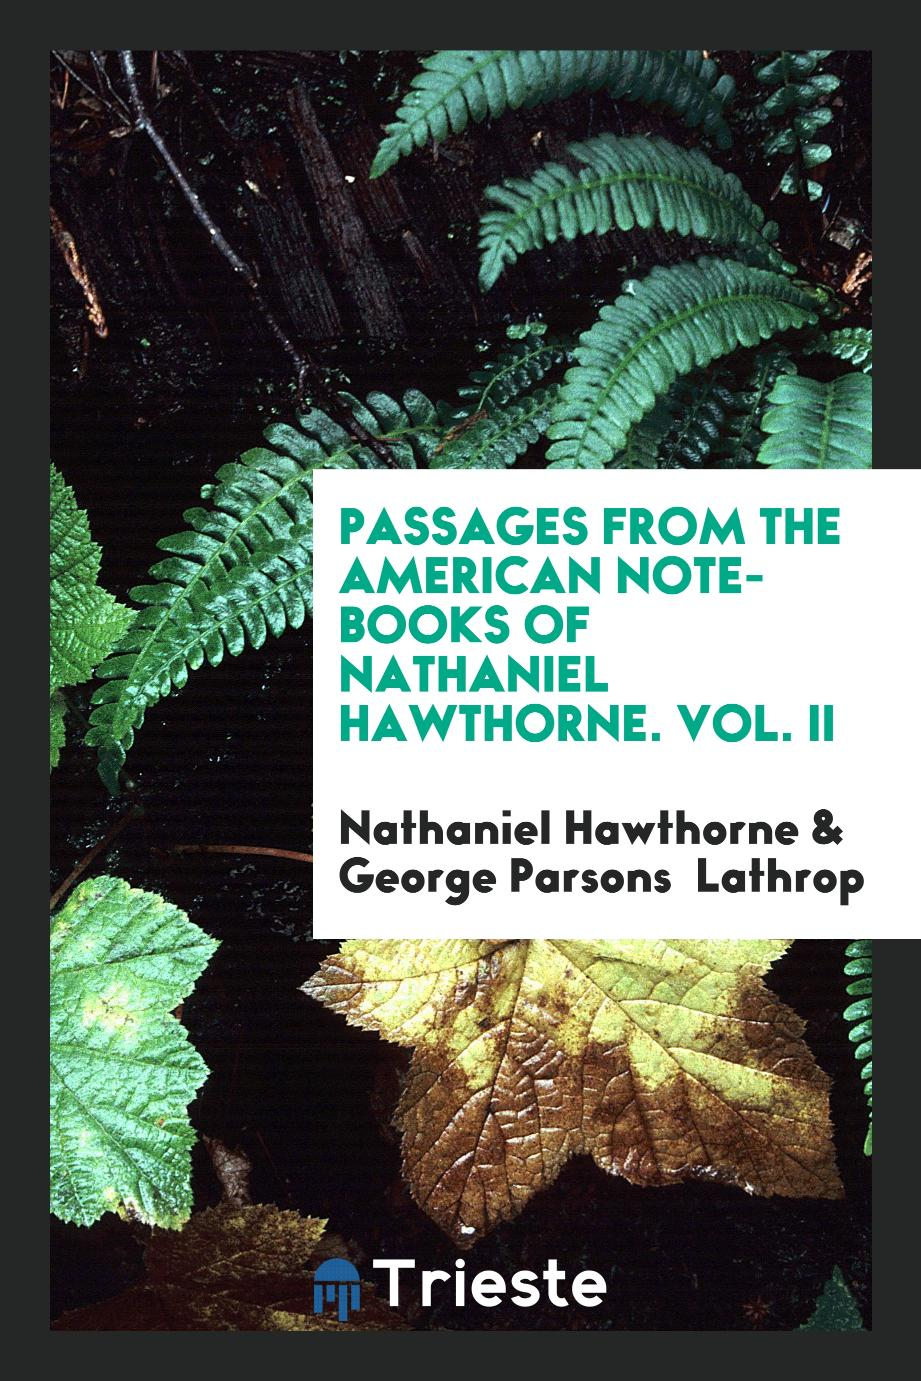 Passages from the American Note-books of Nathaniel Hawthorne. Vol. II